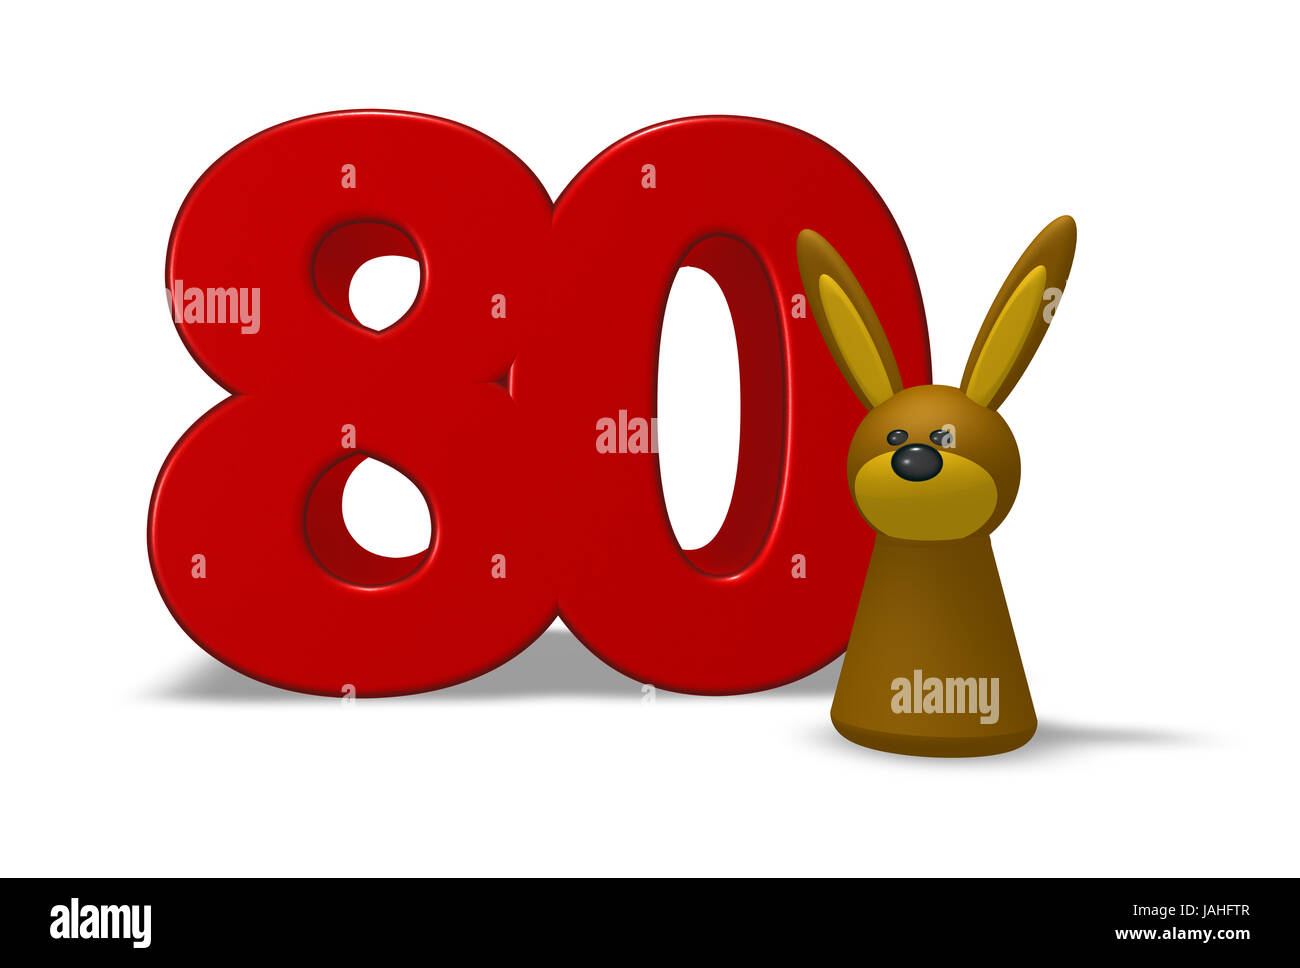 80 Geburtstag Cut Out Stock Images Pictures Alamy